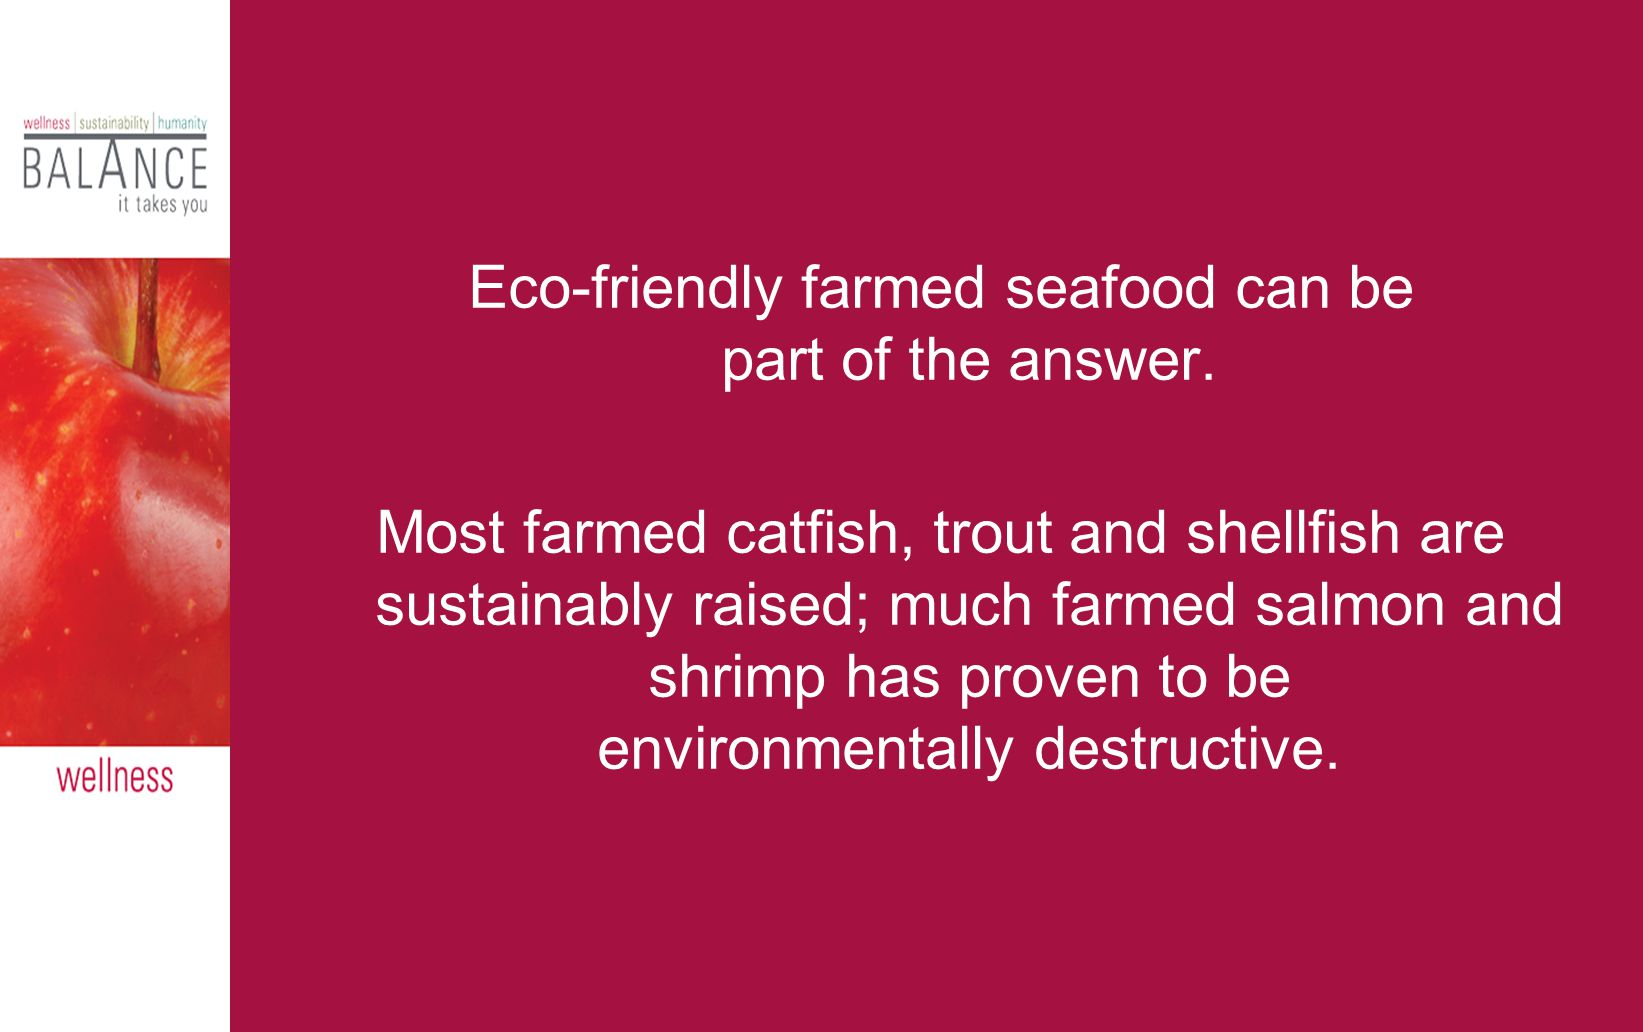 Eco-friendly farmed seafood can be part of the answer.